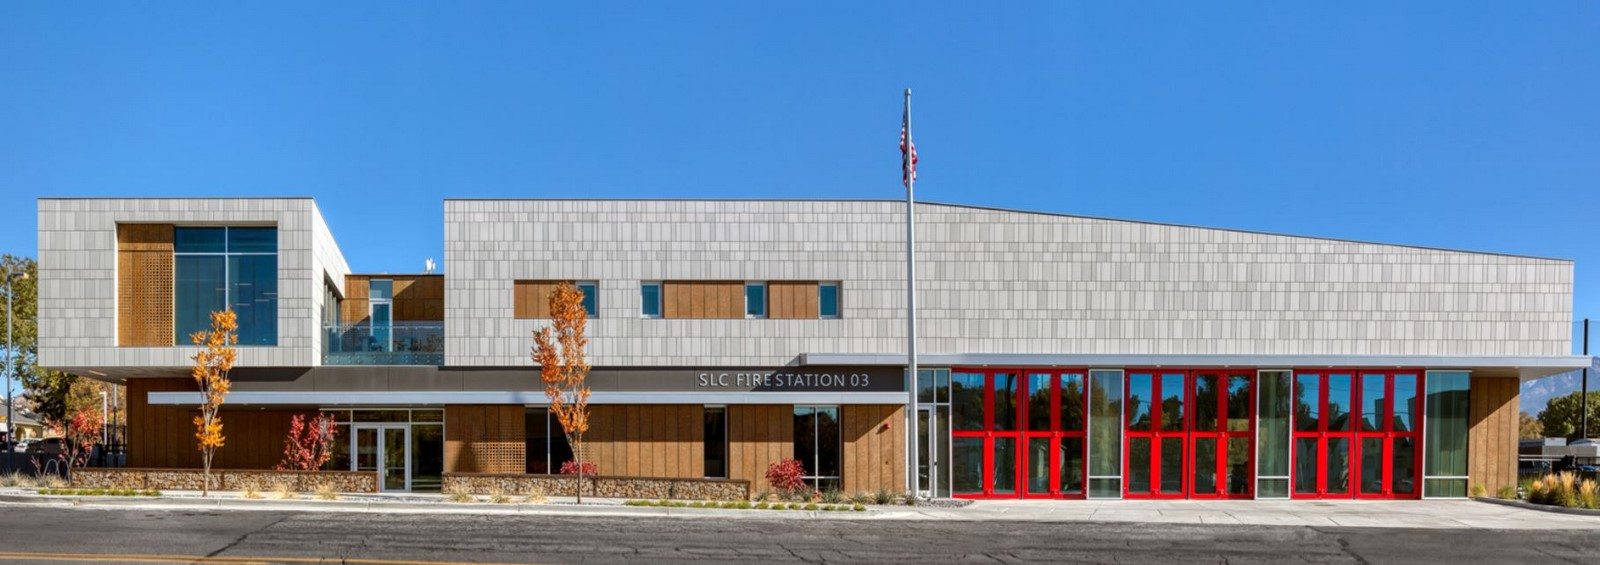 Architects in Salt Lake City - Top 70 Architects in Salt Lake city - Sheet5